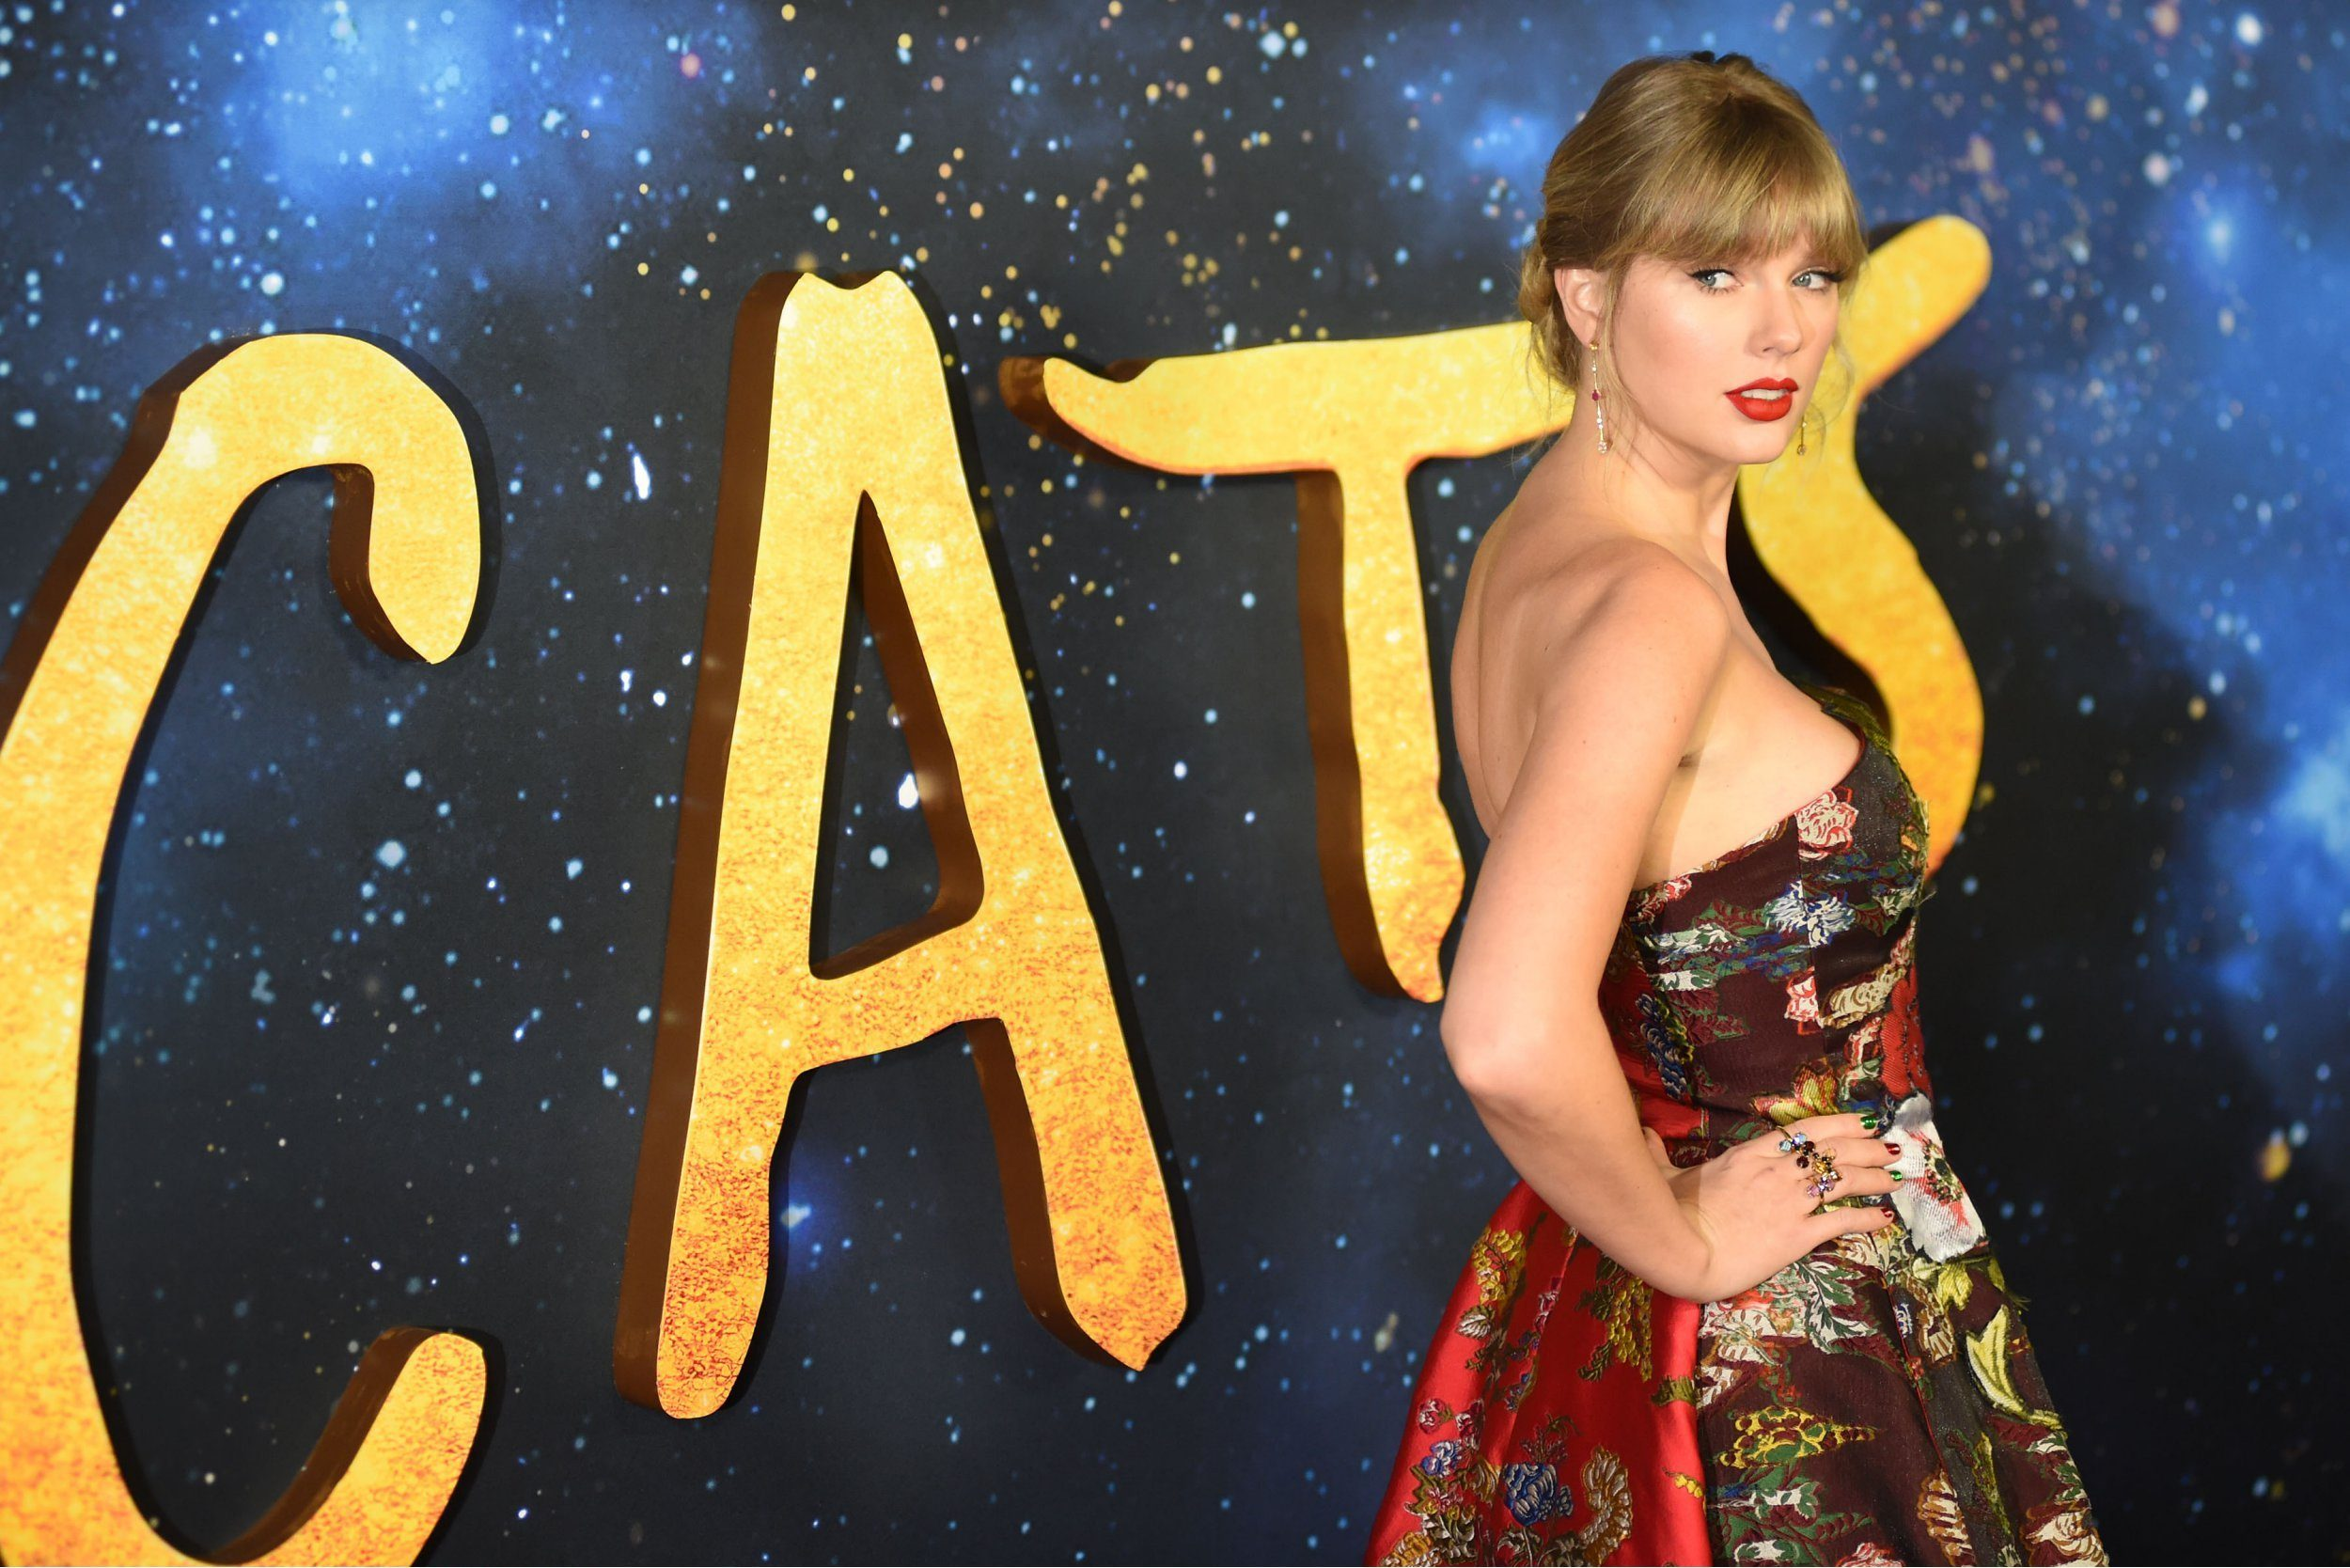 Taylor Swift lives dream at Cats premiere as first reviews